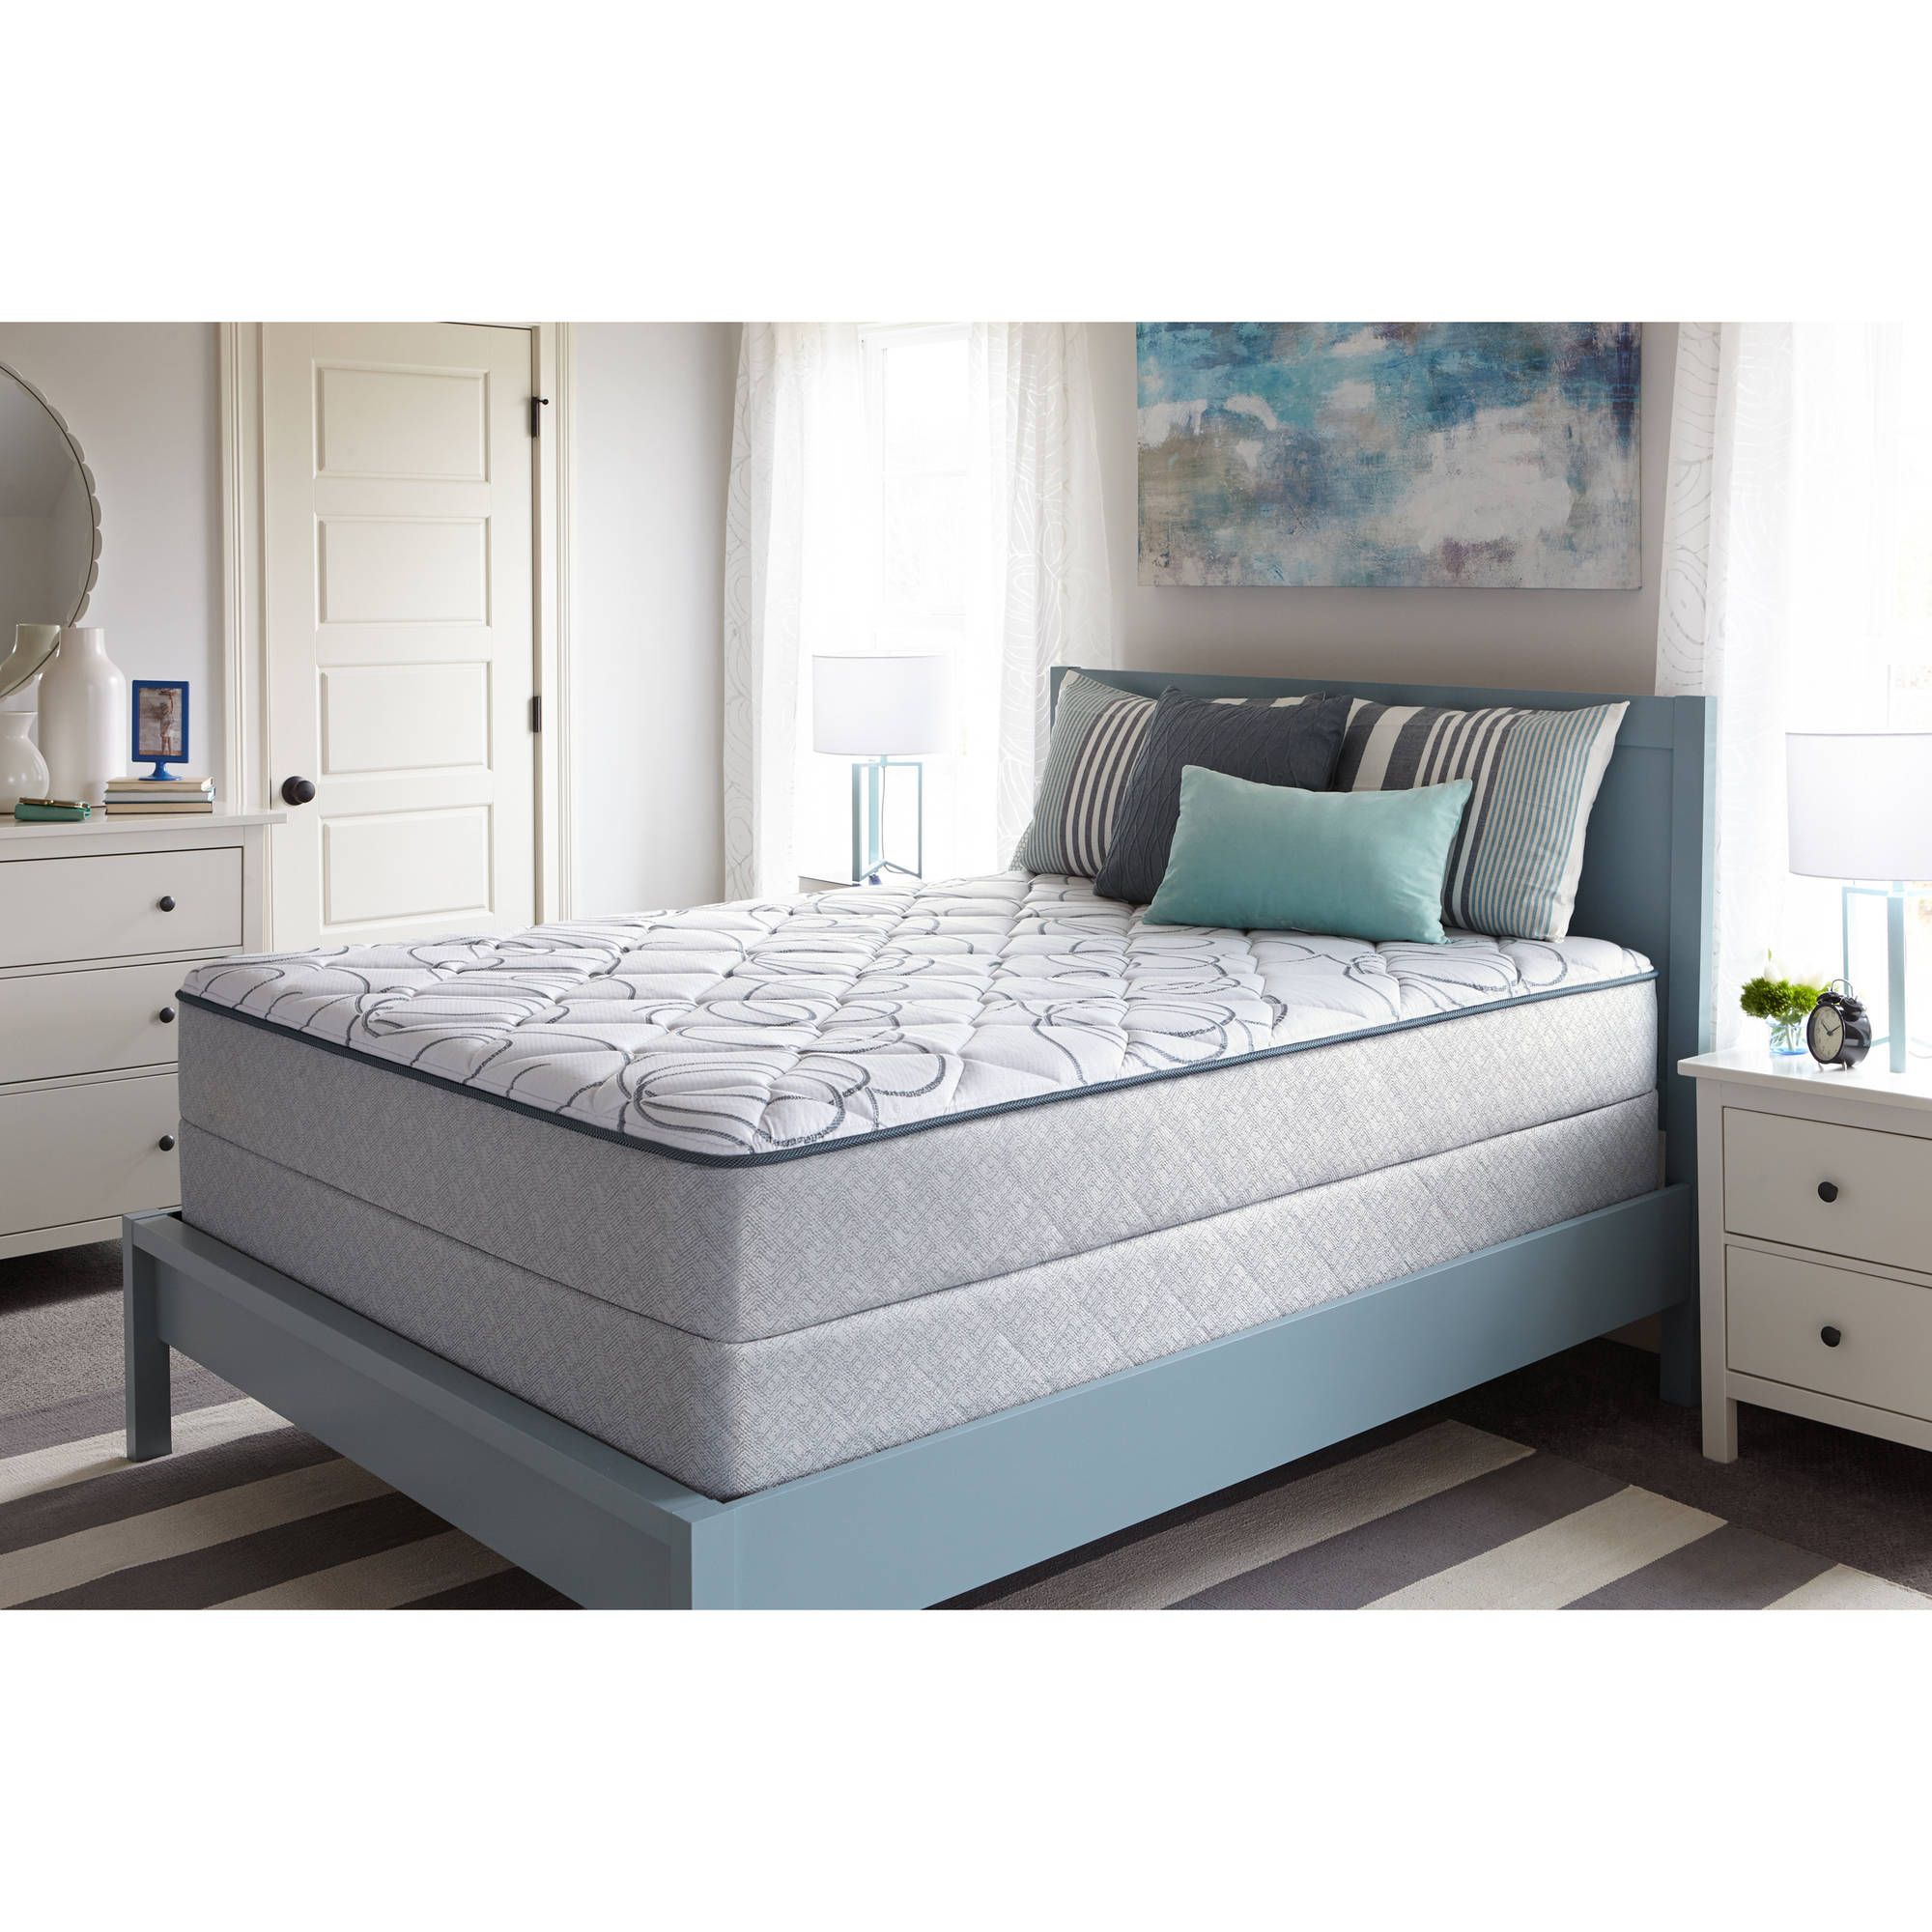 Sealy Faux Euro Top Cathcart Mattress, Plush, Multiple